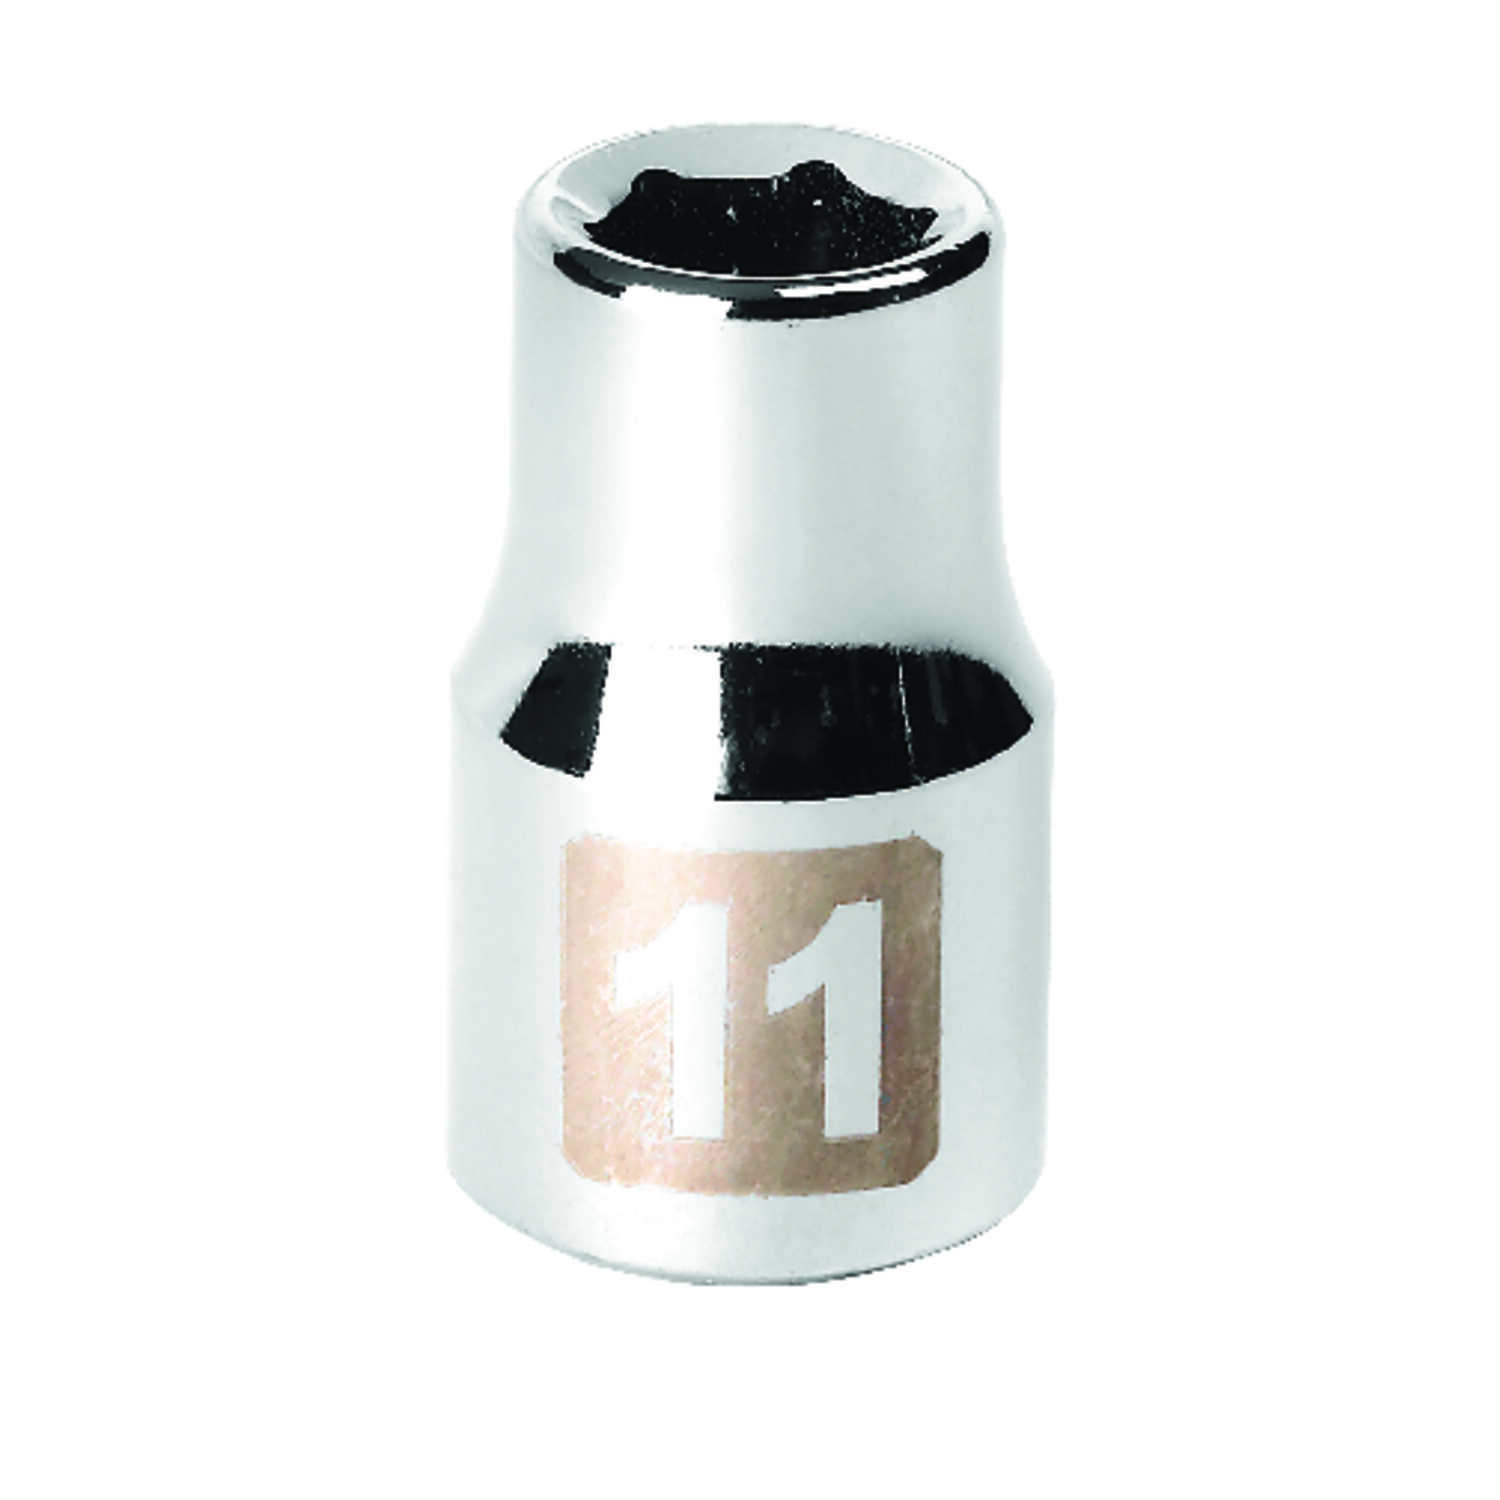 Craftsman  11 mm  x 1/2 in. drive  Metric  6 Point Standard  Socket  1 pc.